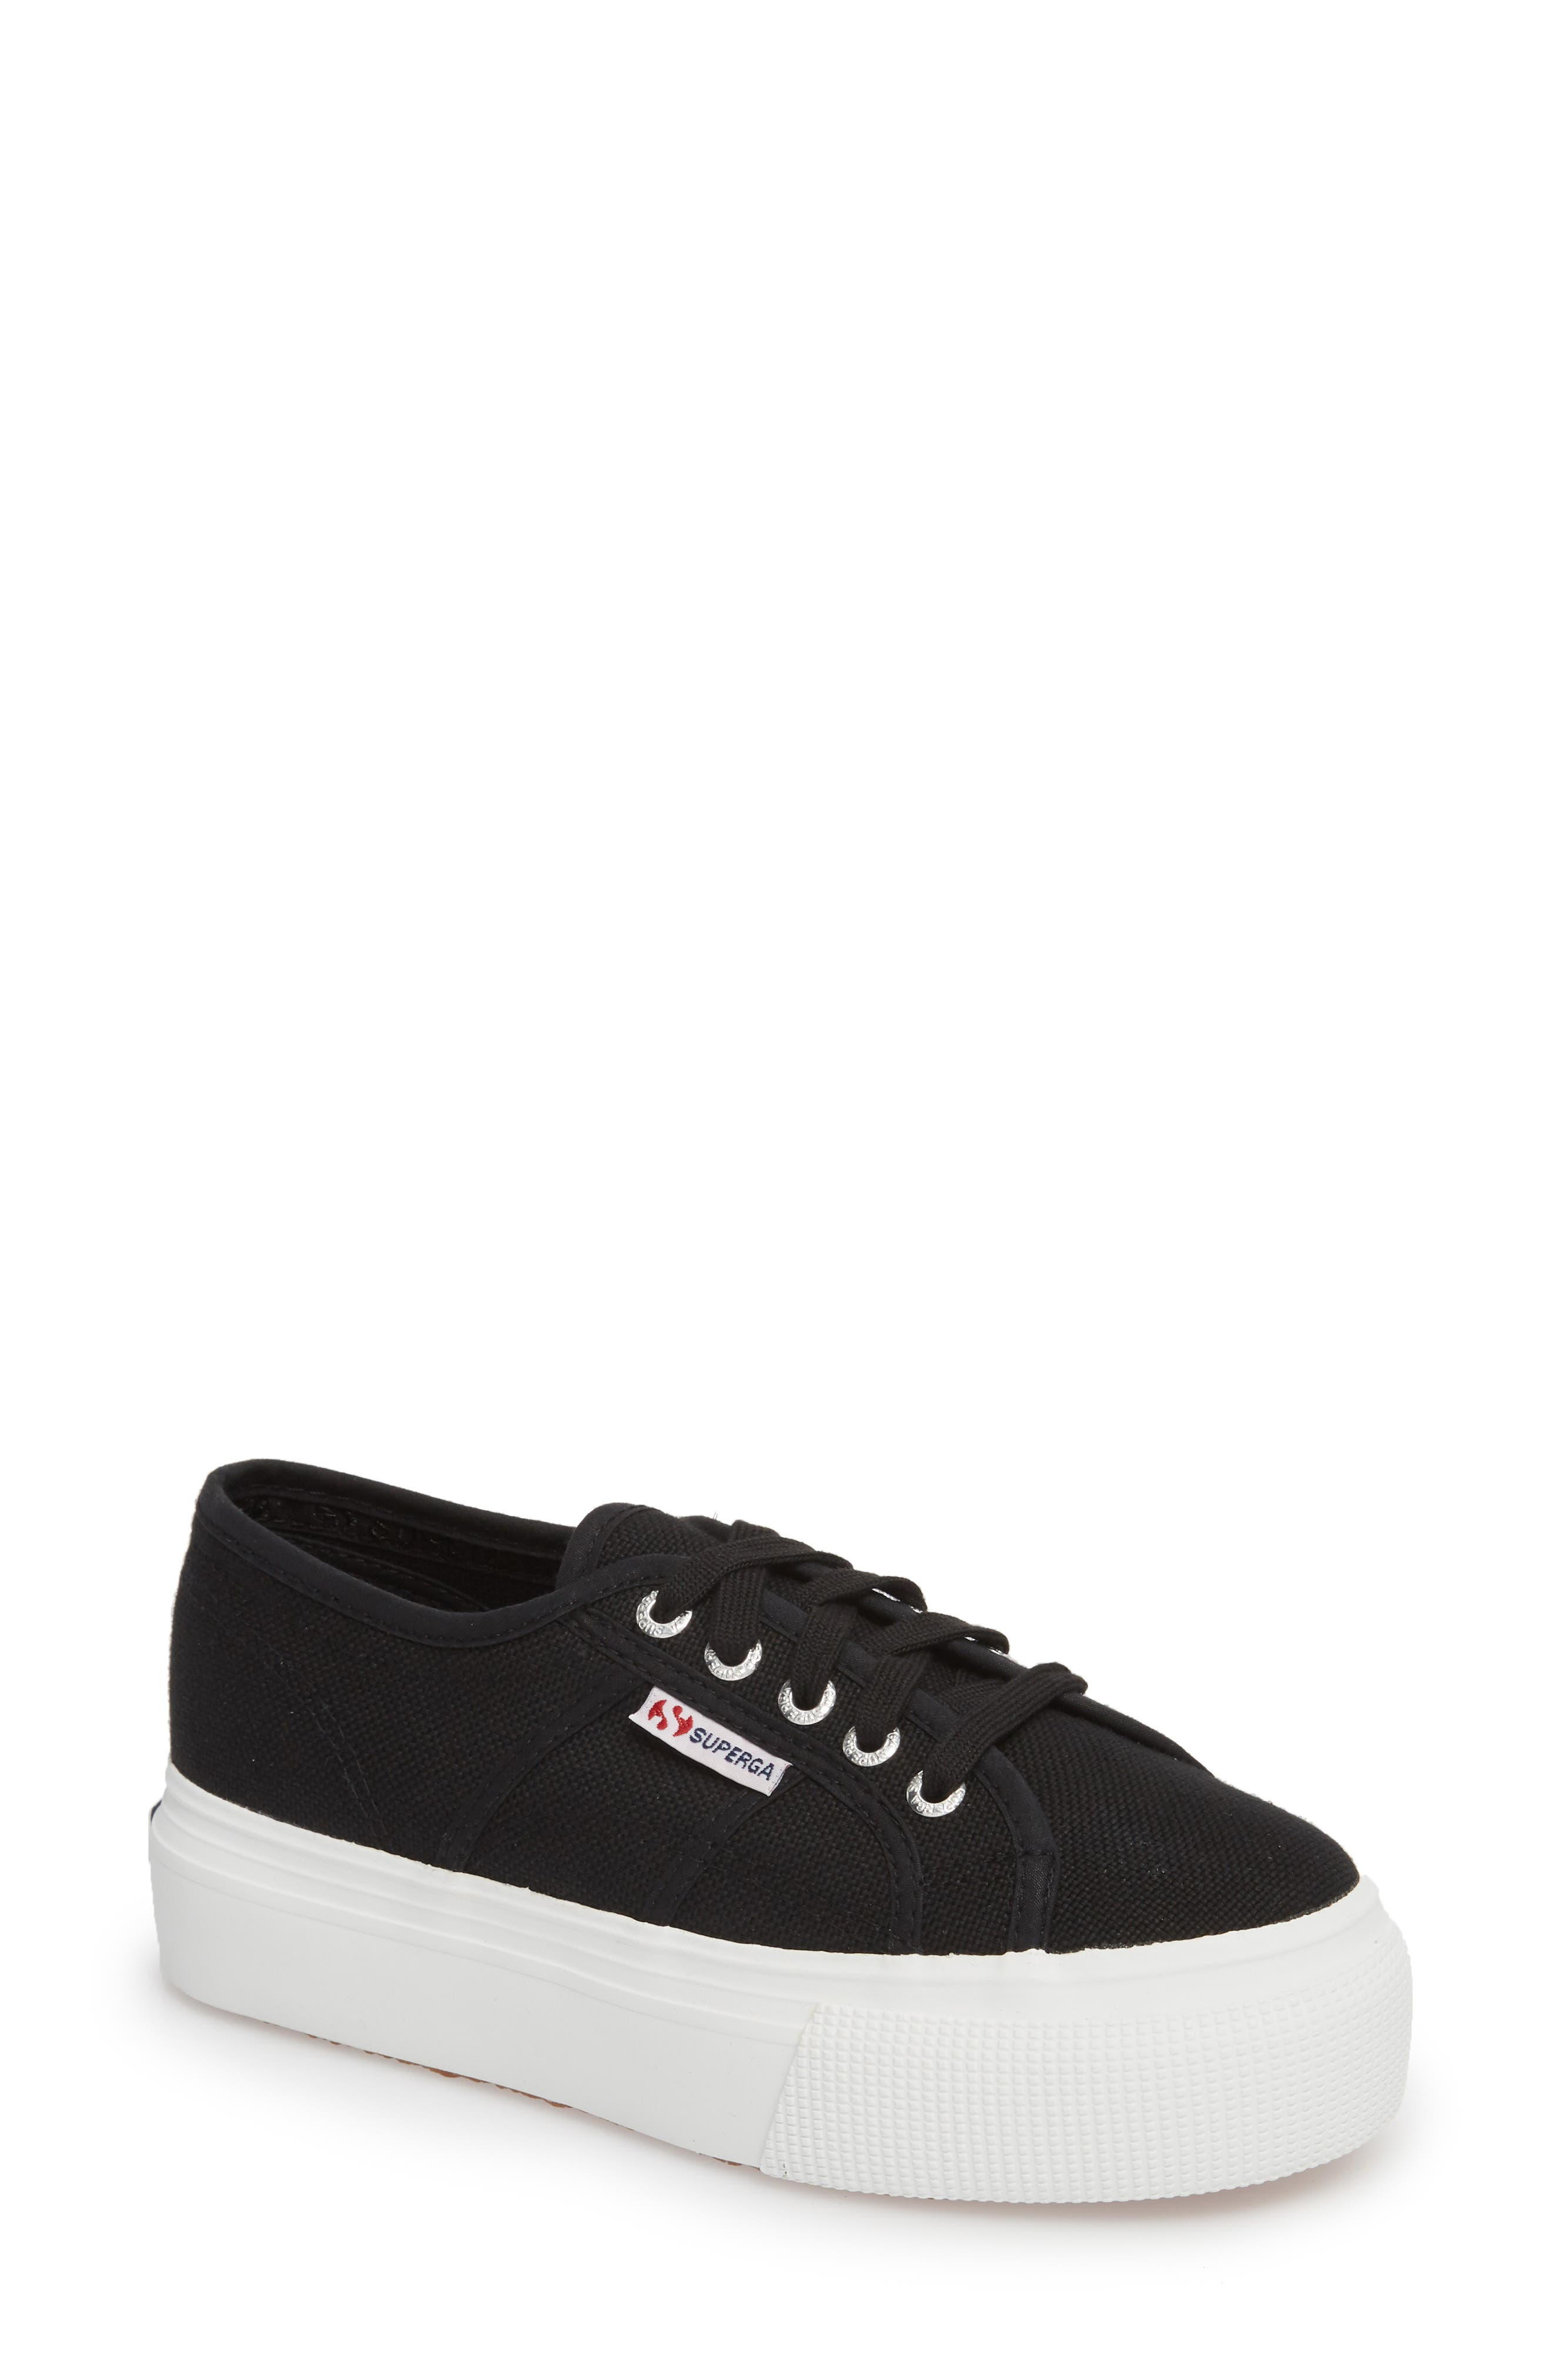 'Acot Linea' Sneaker, Main, color, BLACK/ WHITE